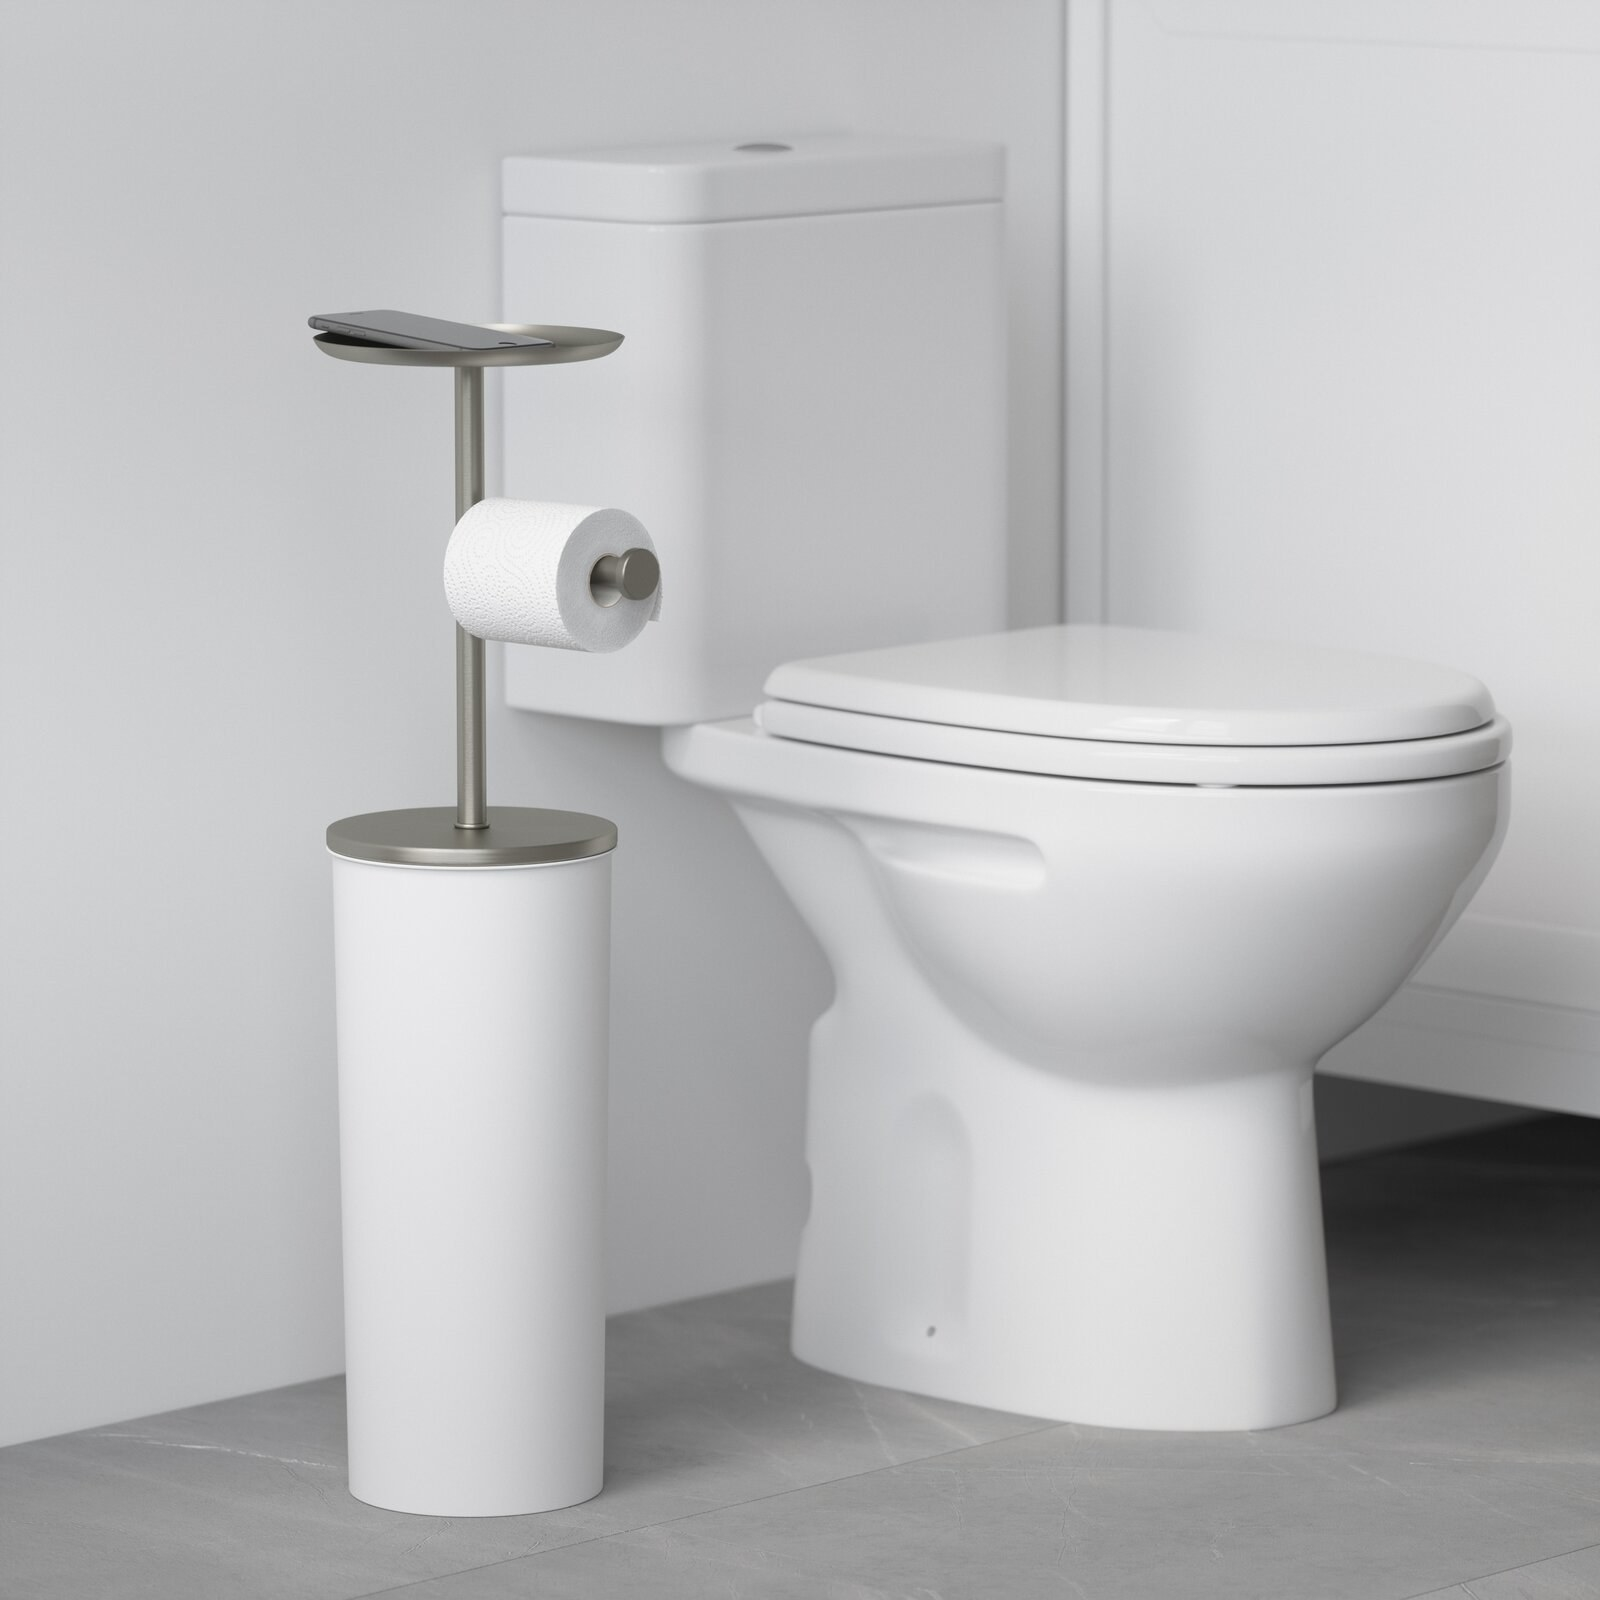 The stand next to a toilet